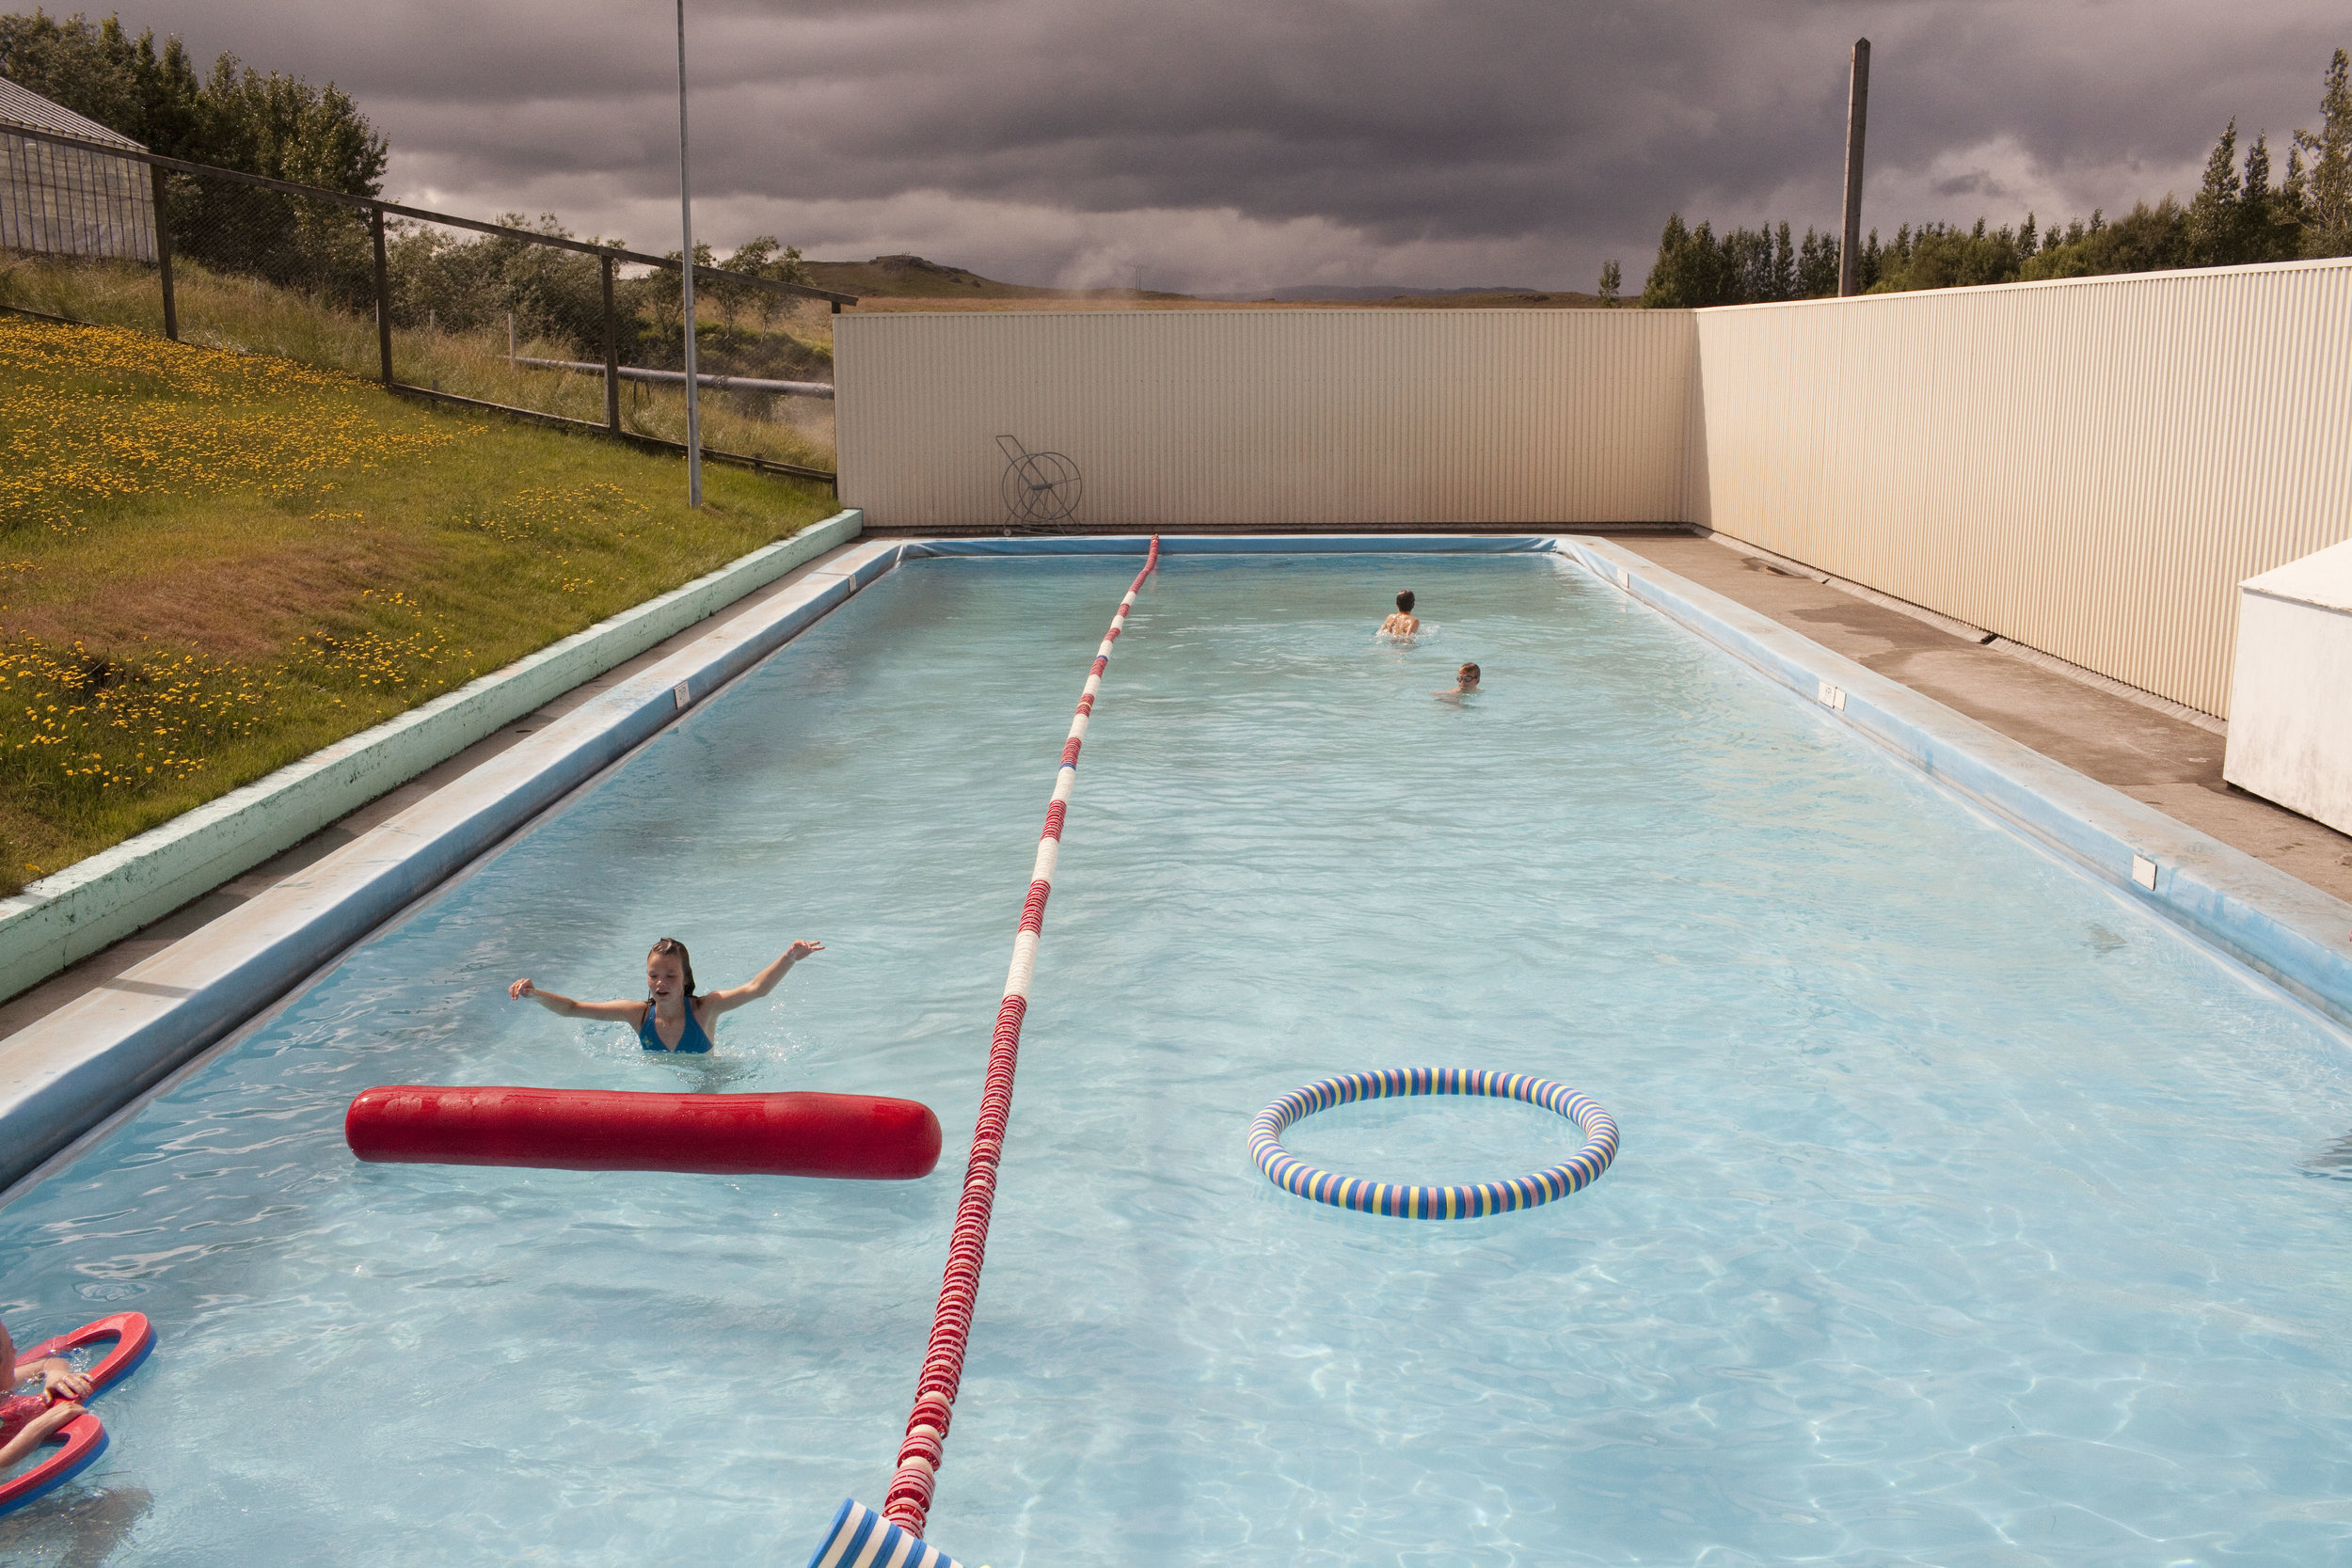 At the community pool in Fludir, Iceland. The small town of about 400 people is situated in the mountains and its scenery makes it a popular vacation spot for many Icelanders in the summer months.